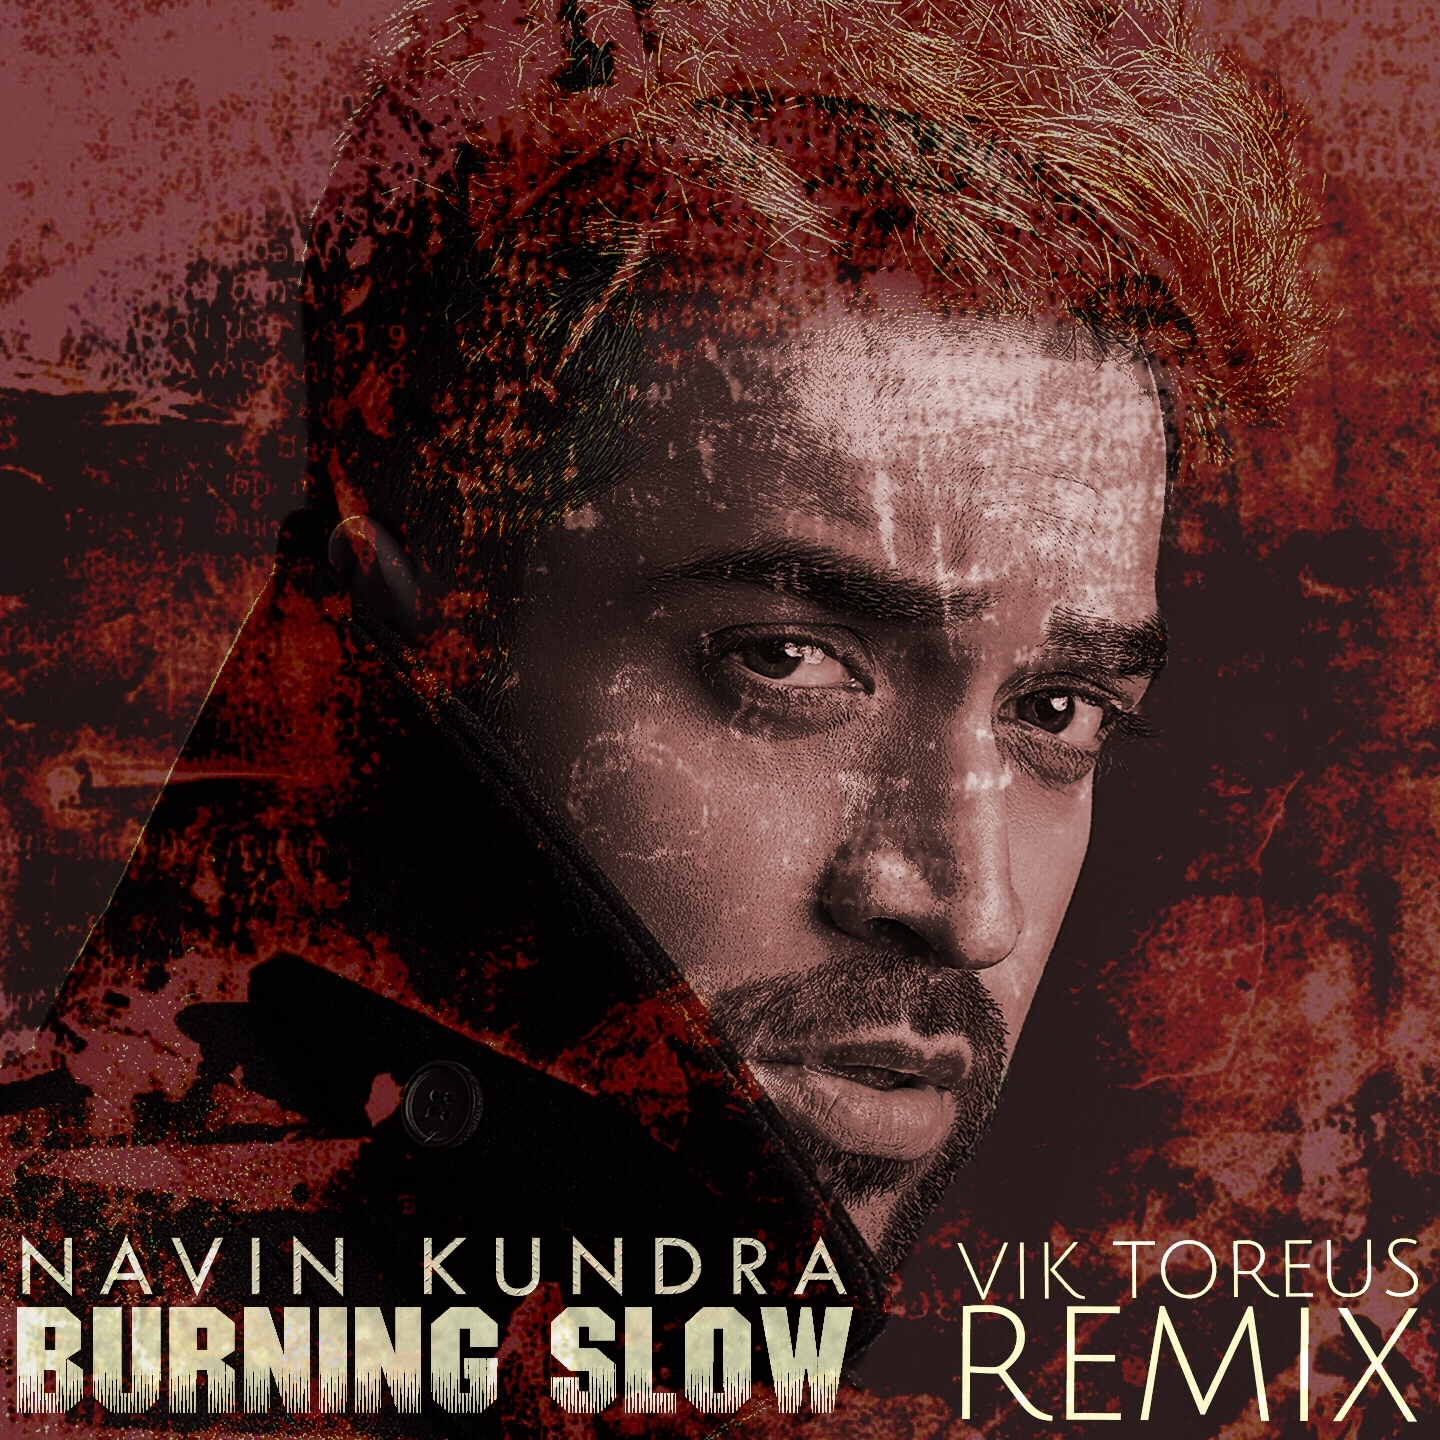 Burning Slow